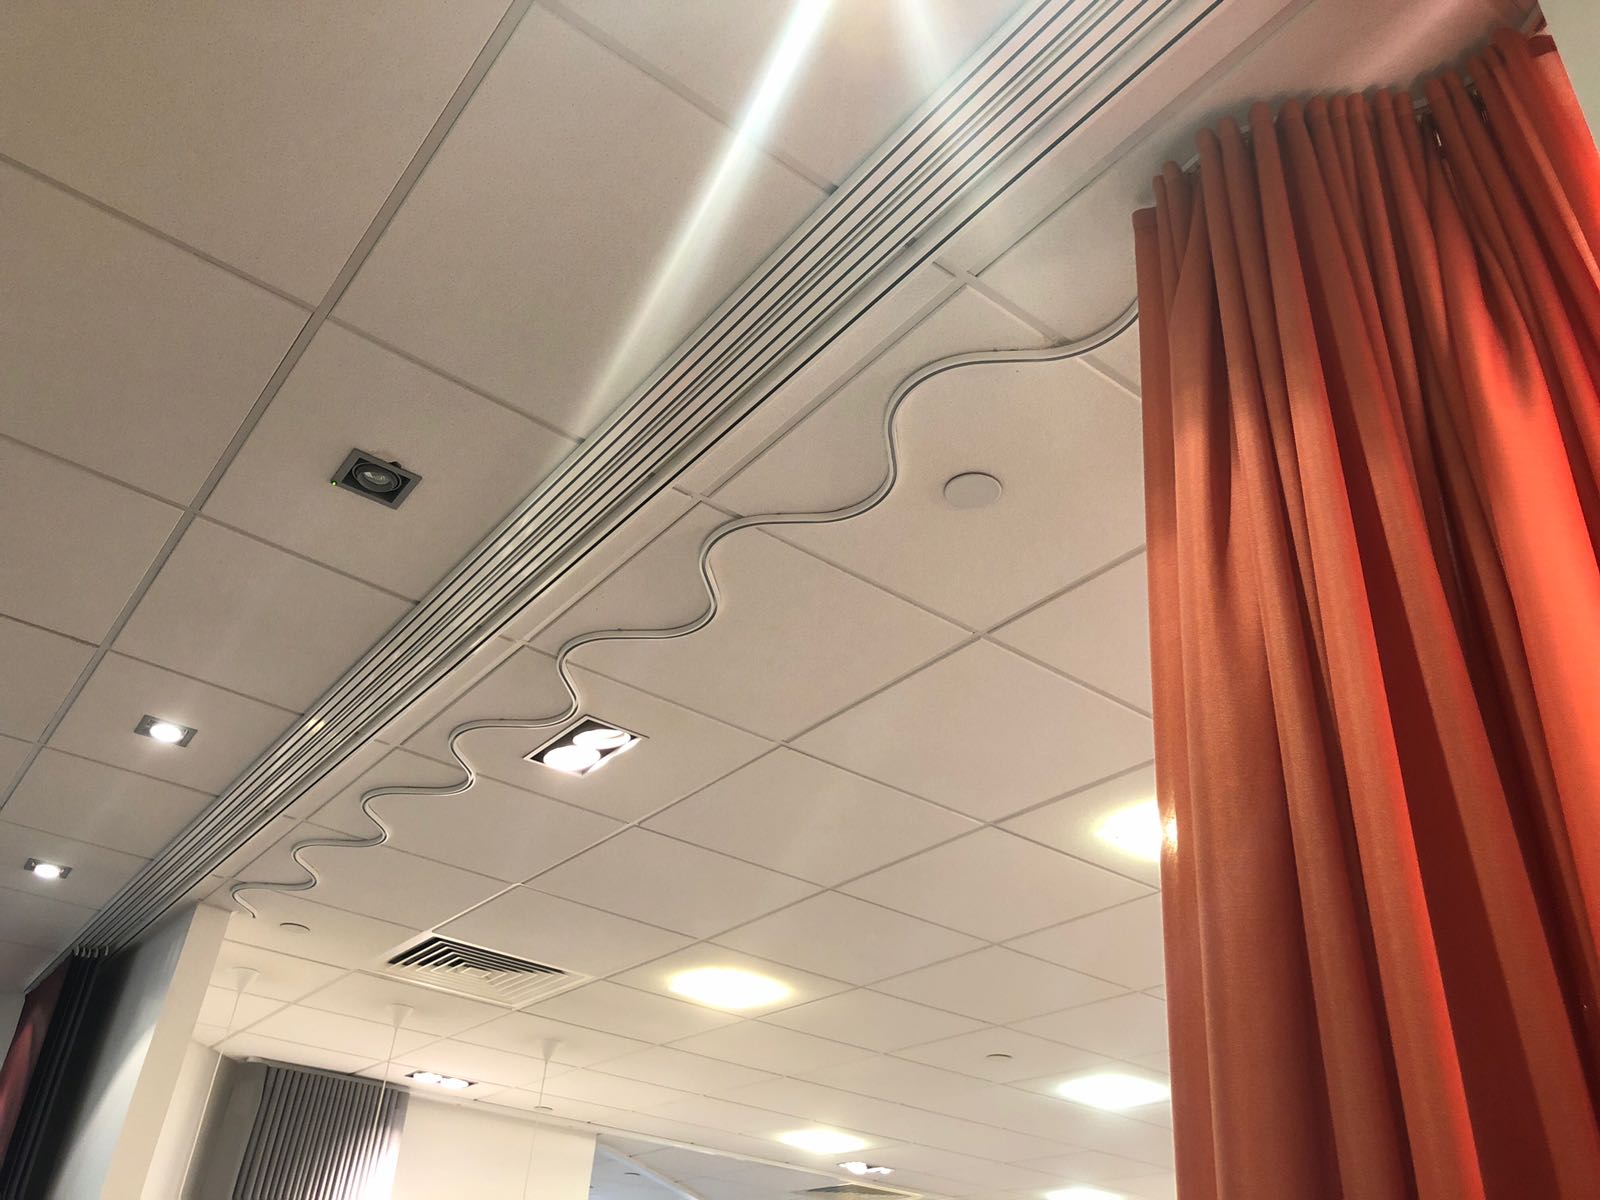 Silent Gliss Business Centre London - Wave curtain tracks